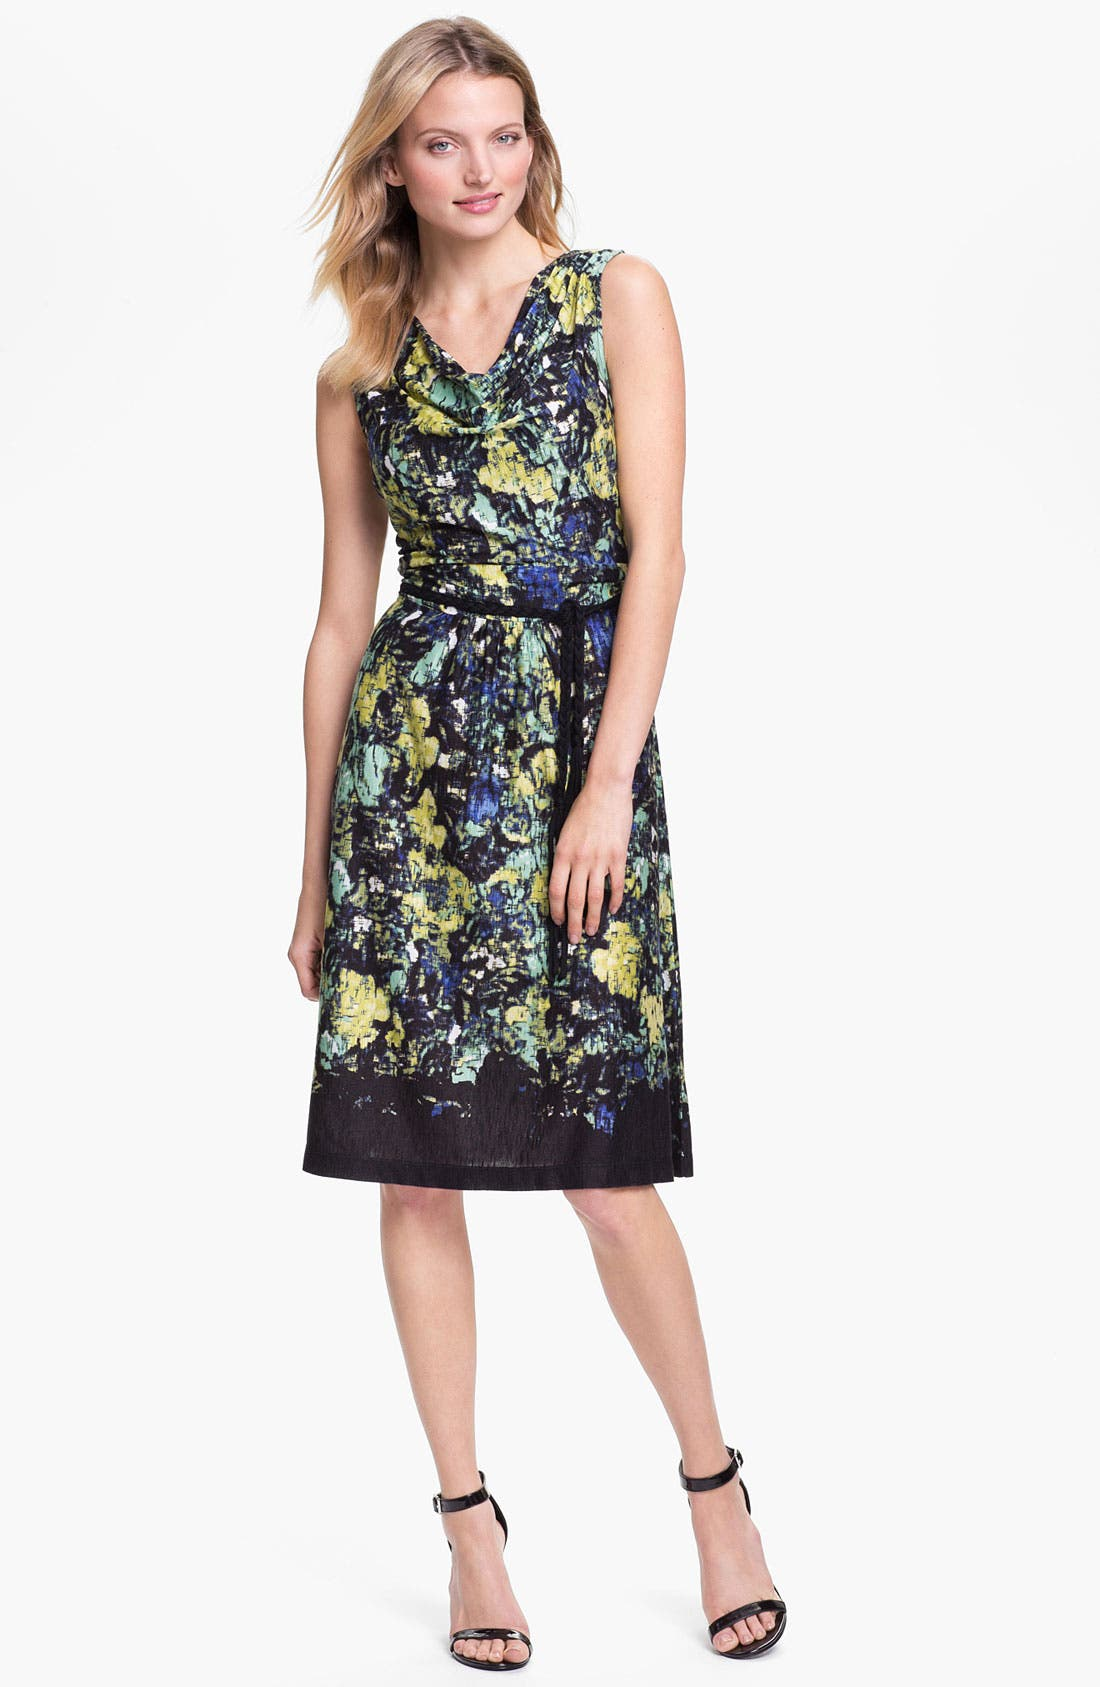 Alternate Image 1 Selected - Nic + Zoe Sleeveless Drape Neck Print Dress